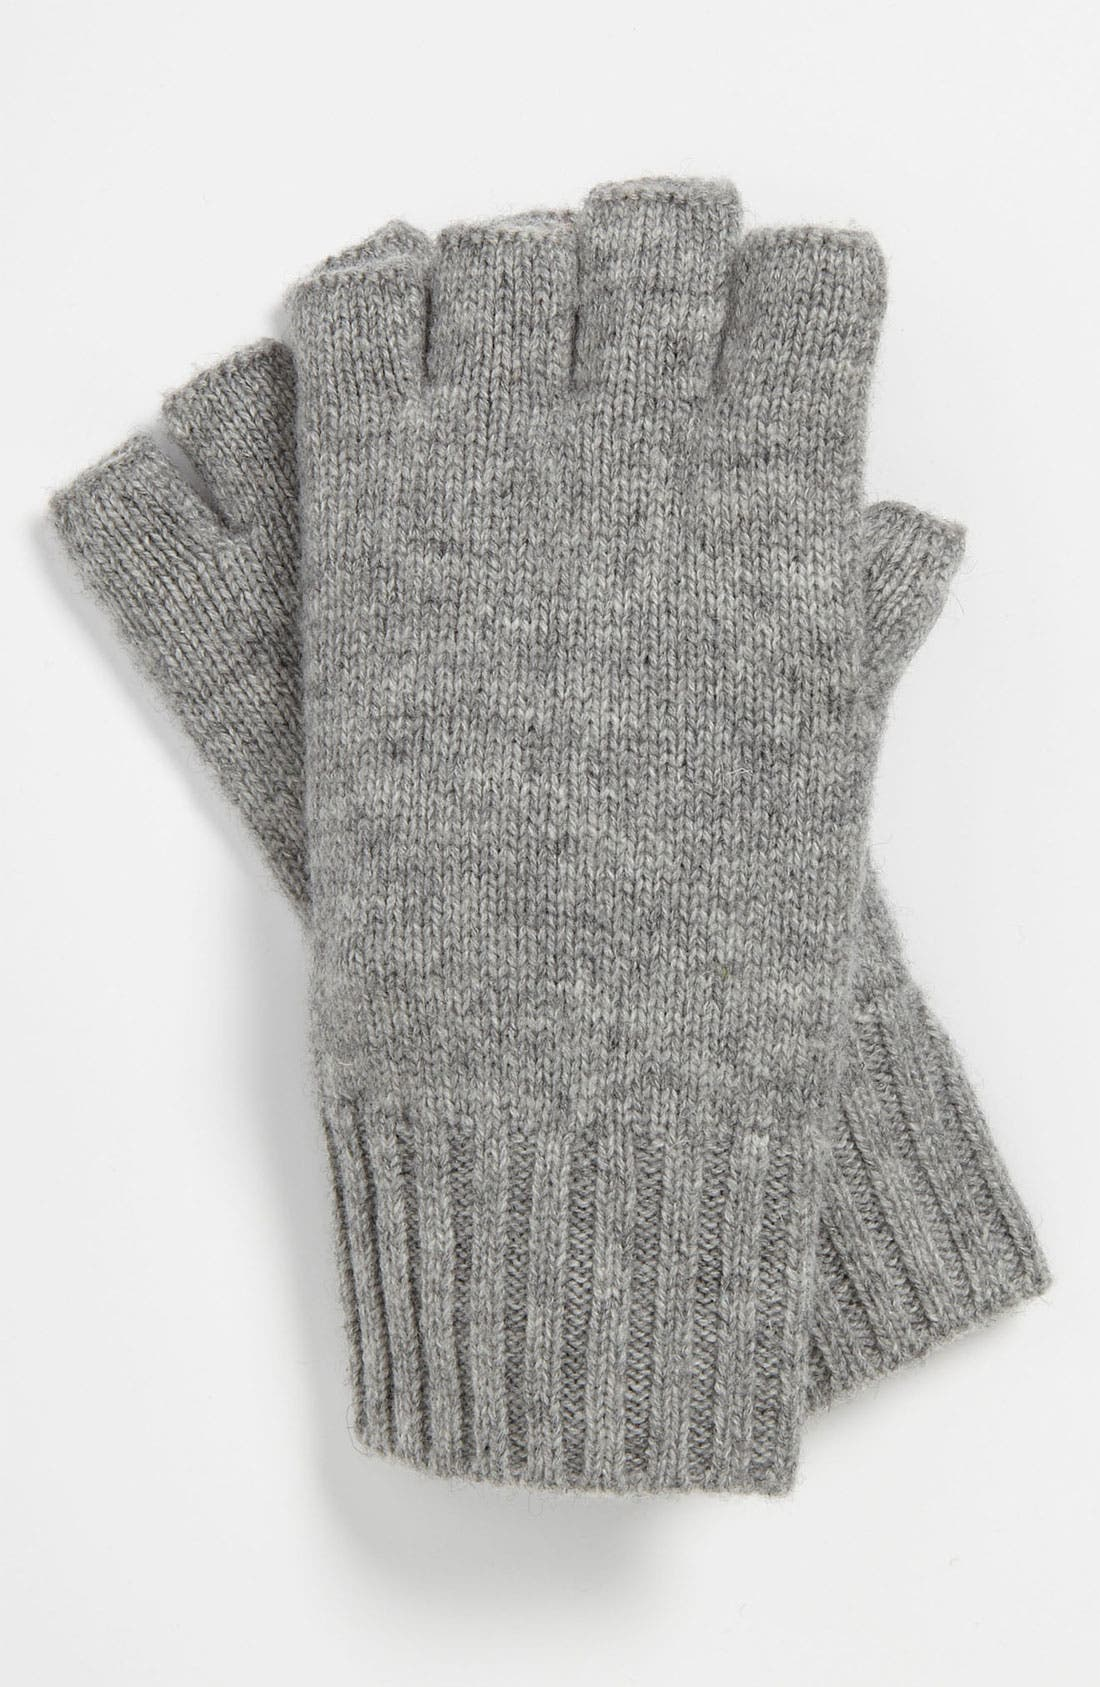 Alternate Image 1 Selected - Michael Kors Fingerless Gloves